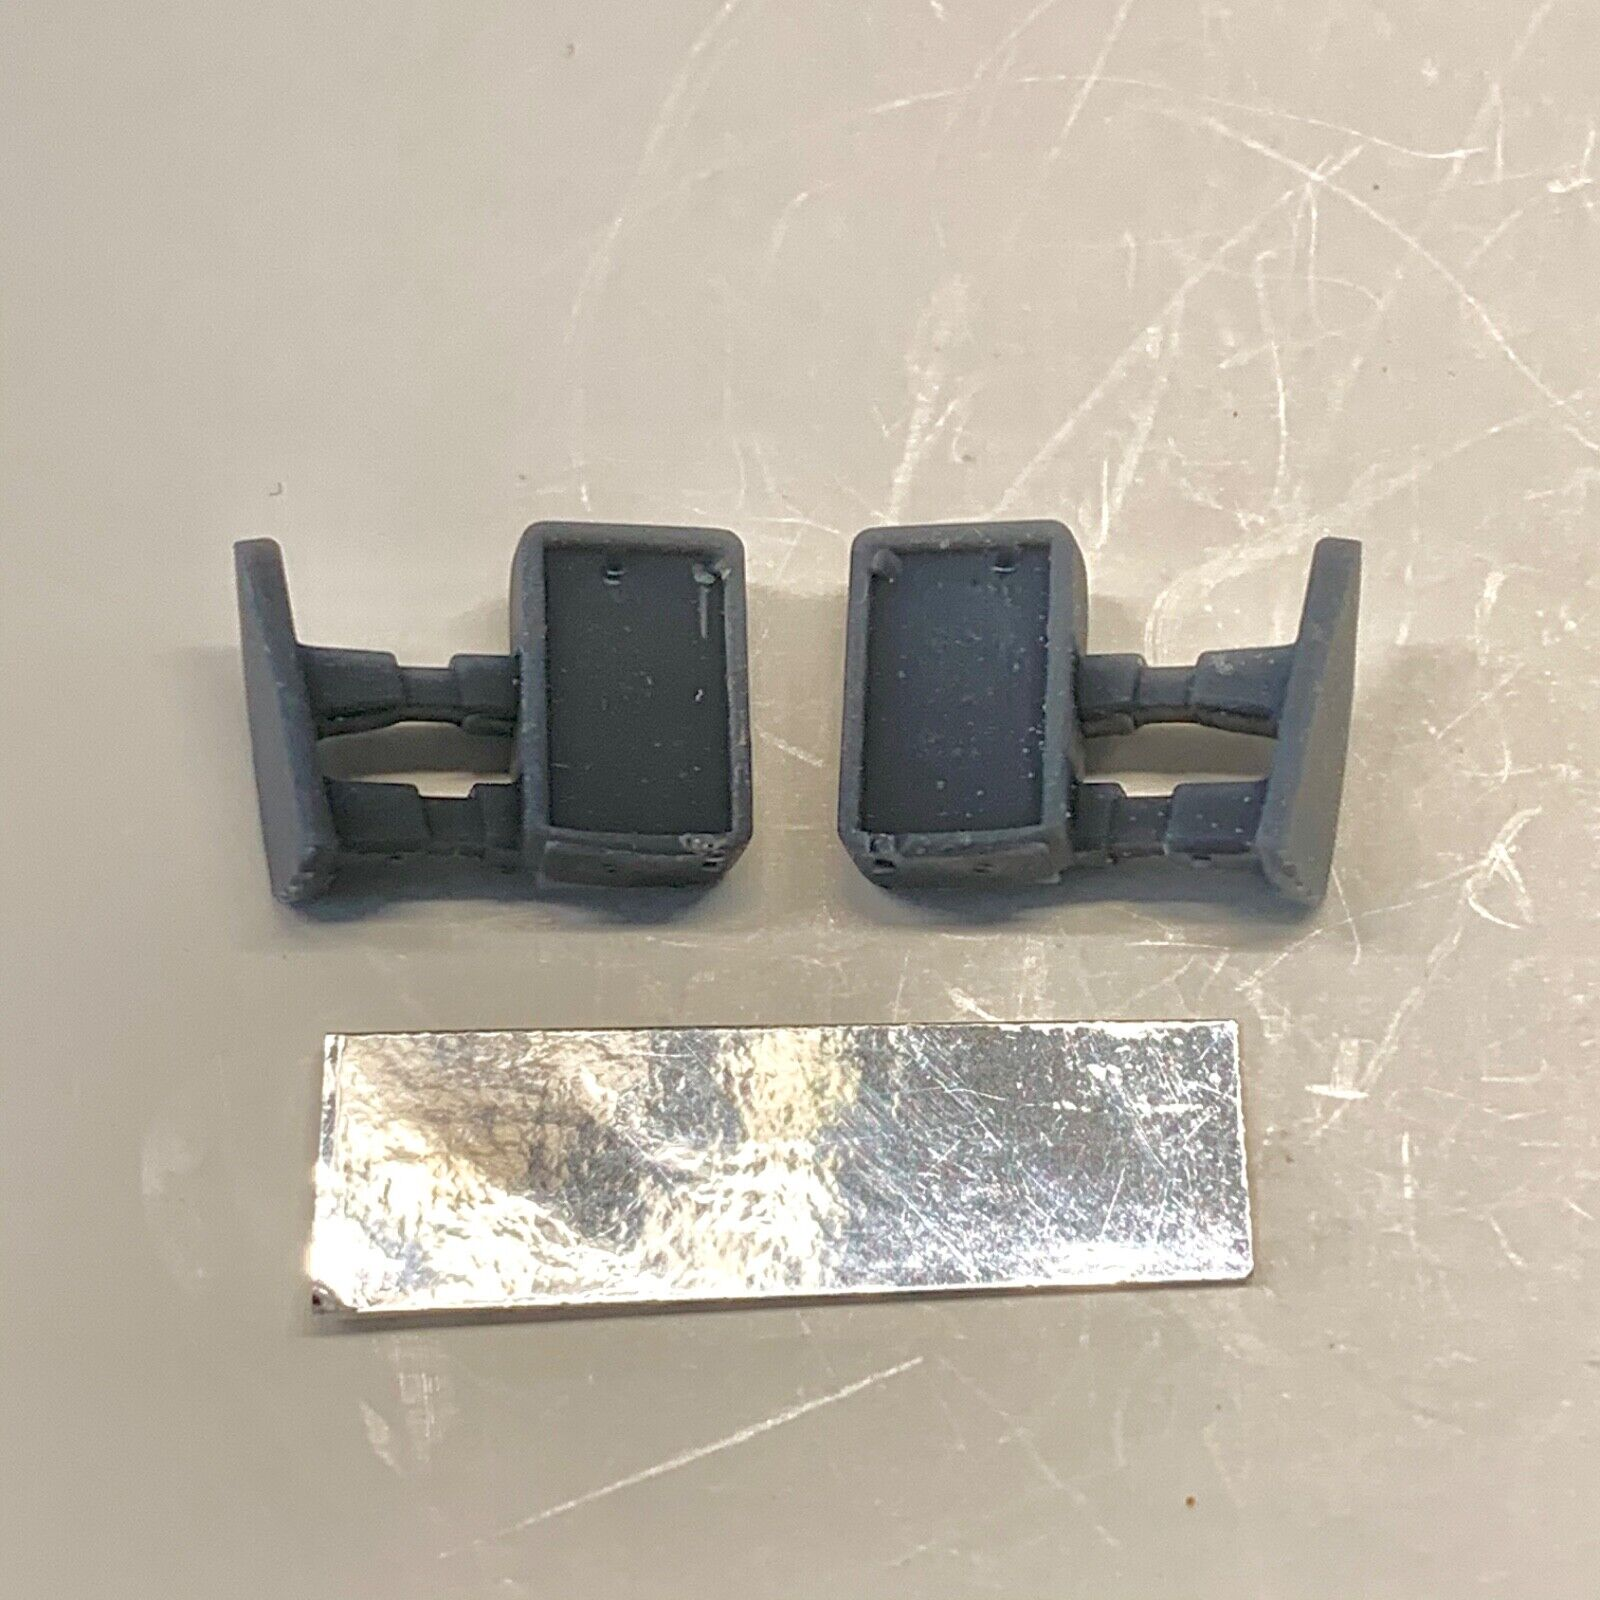 Resin Modern Mirrors for Truck Pickup Tow 1/24 1/25 Version